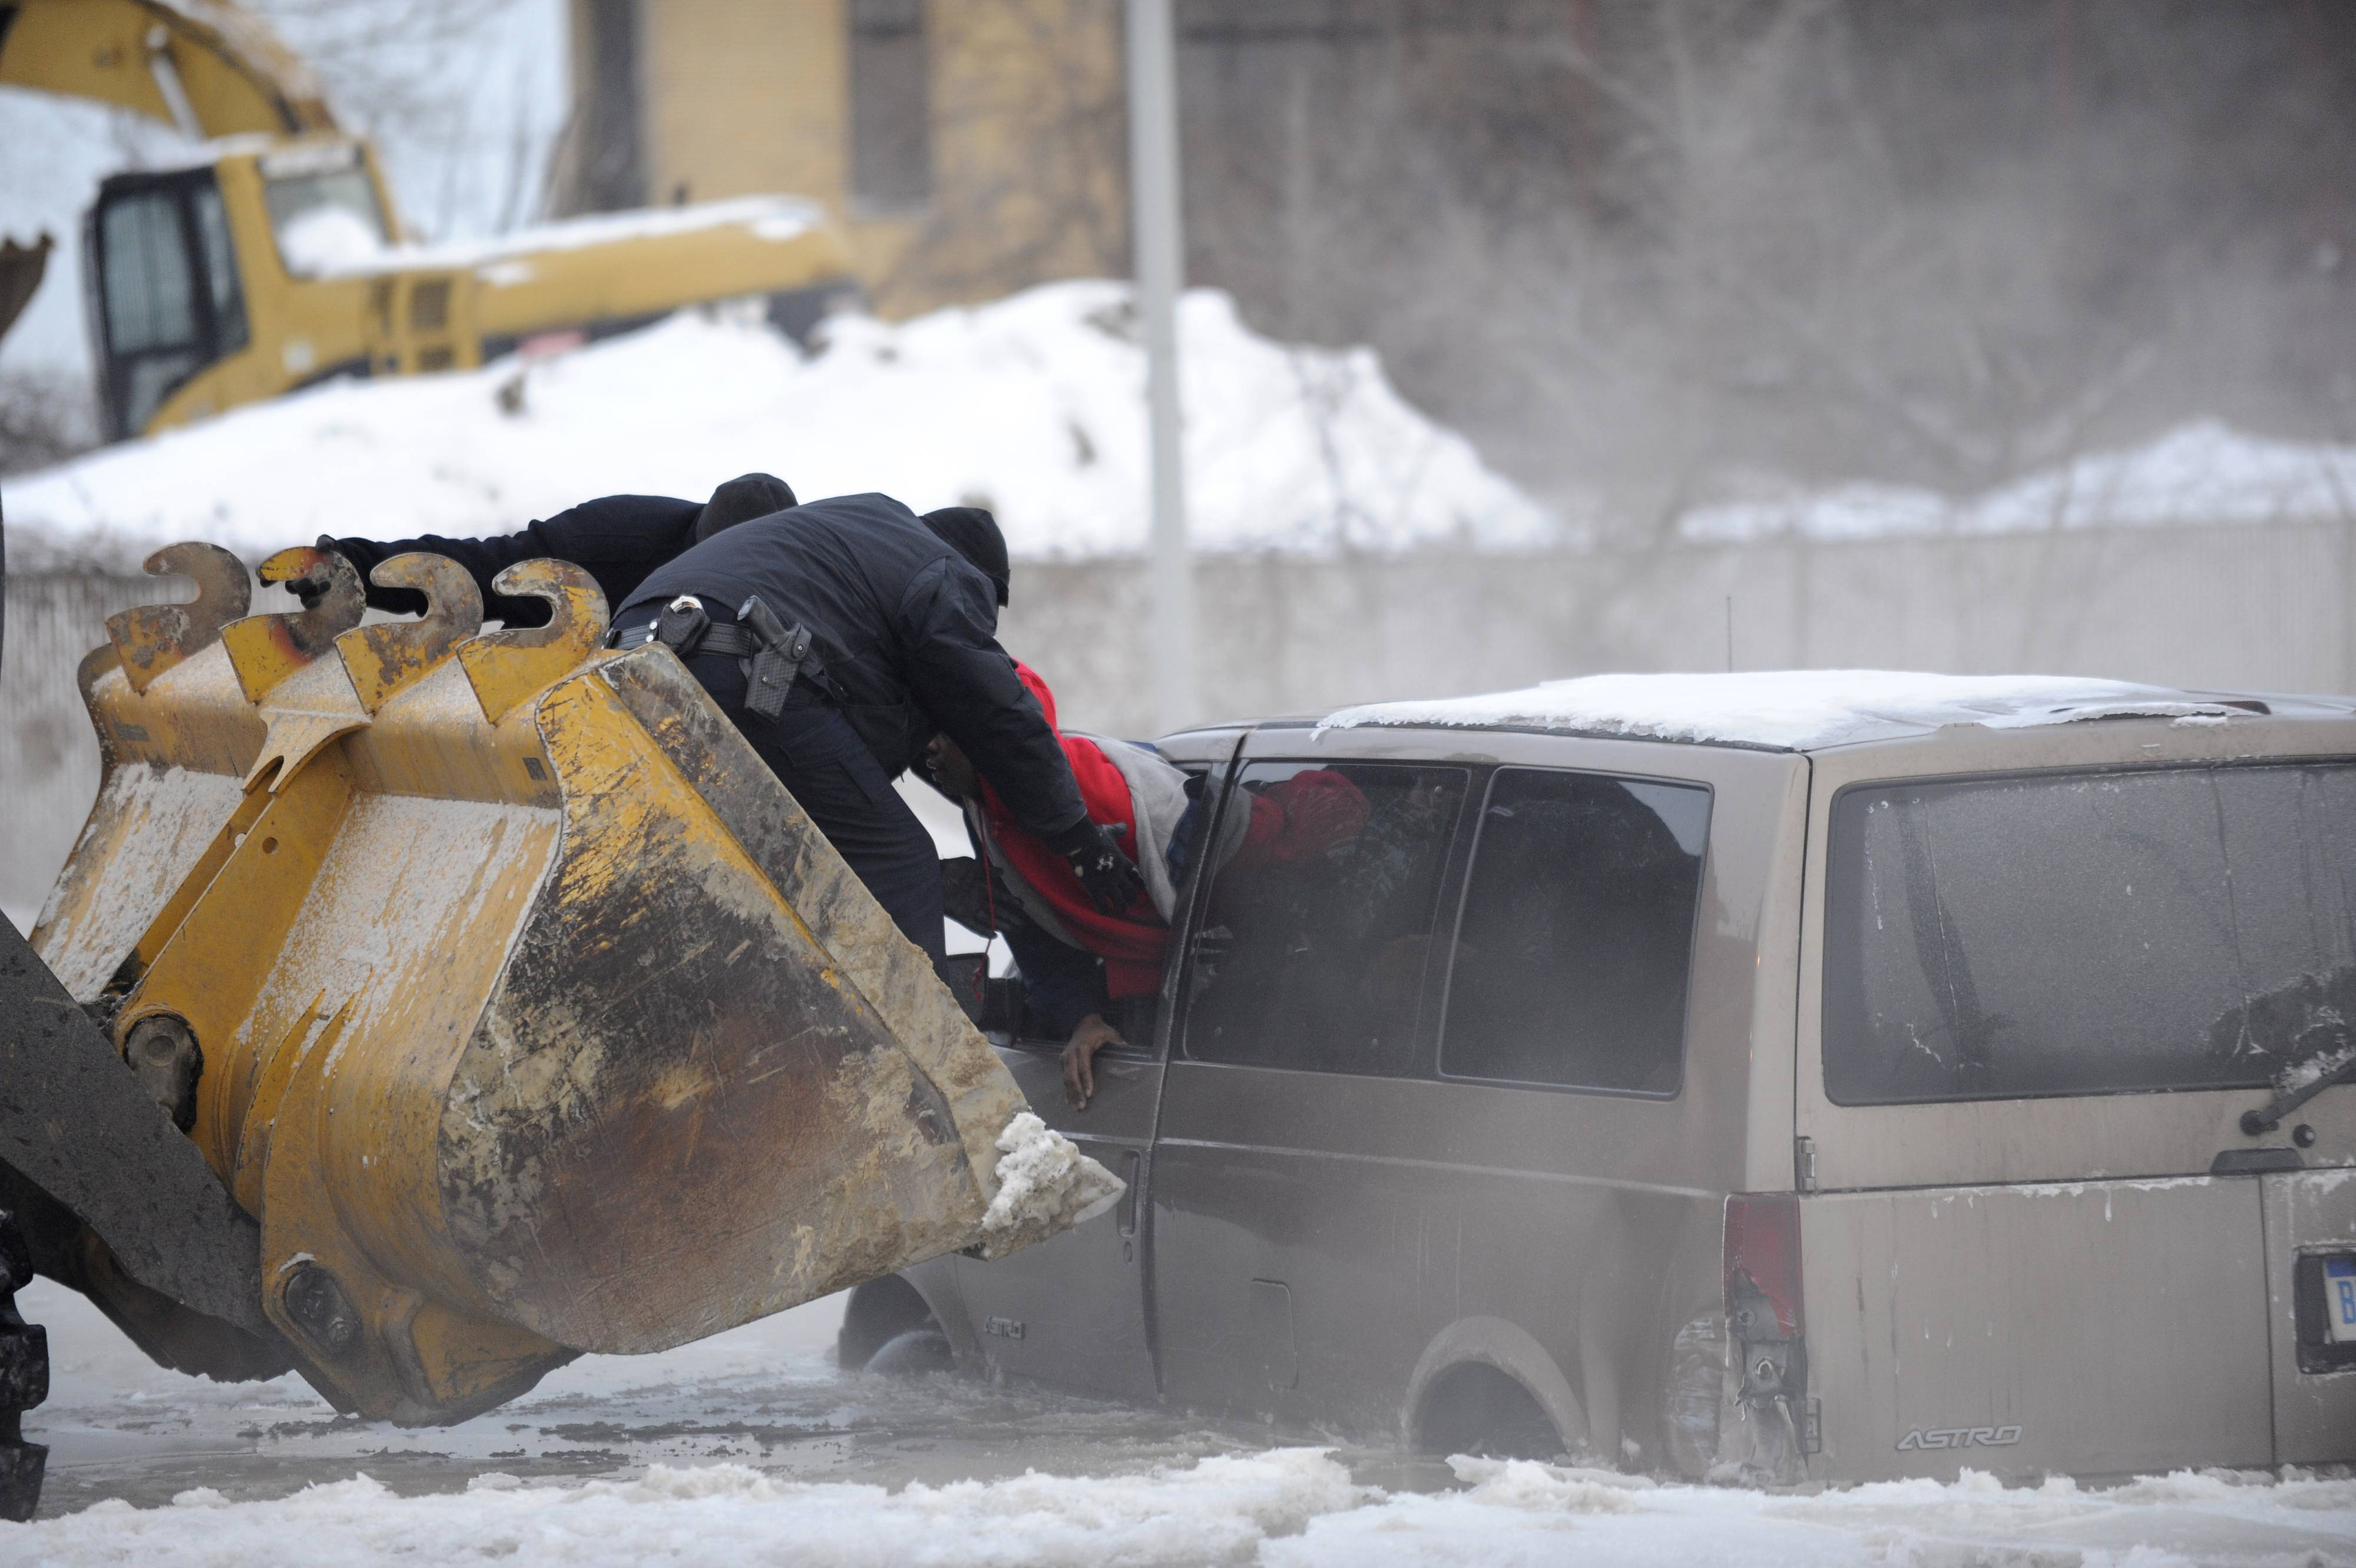 Detroit police use the scoop of a front-end loader to carry two people stranded in a minivan to safety after street flooding caused by a water main break on Friday, Feb. 7, 2014 on Detroit's east side. Several vehicles were stuck in water and ice, prompting a rescue by police officers on construction equipment. The break was reported about 5 a.m. Friday in the area of Gratiot Avenue at Conner Street. The scoop of a front-end loader was used to carry two people stranded in a minivan. Crews also worked to clear ice and water from the area, which is closed to traffic. No injuries were reported.